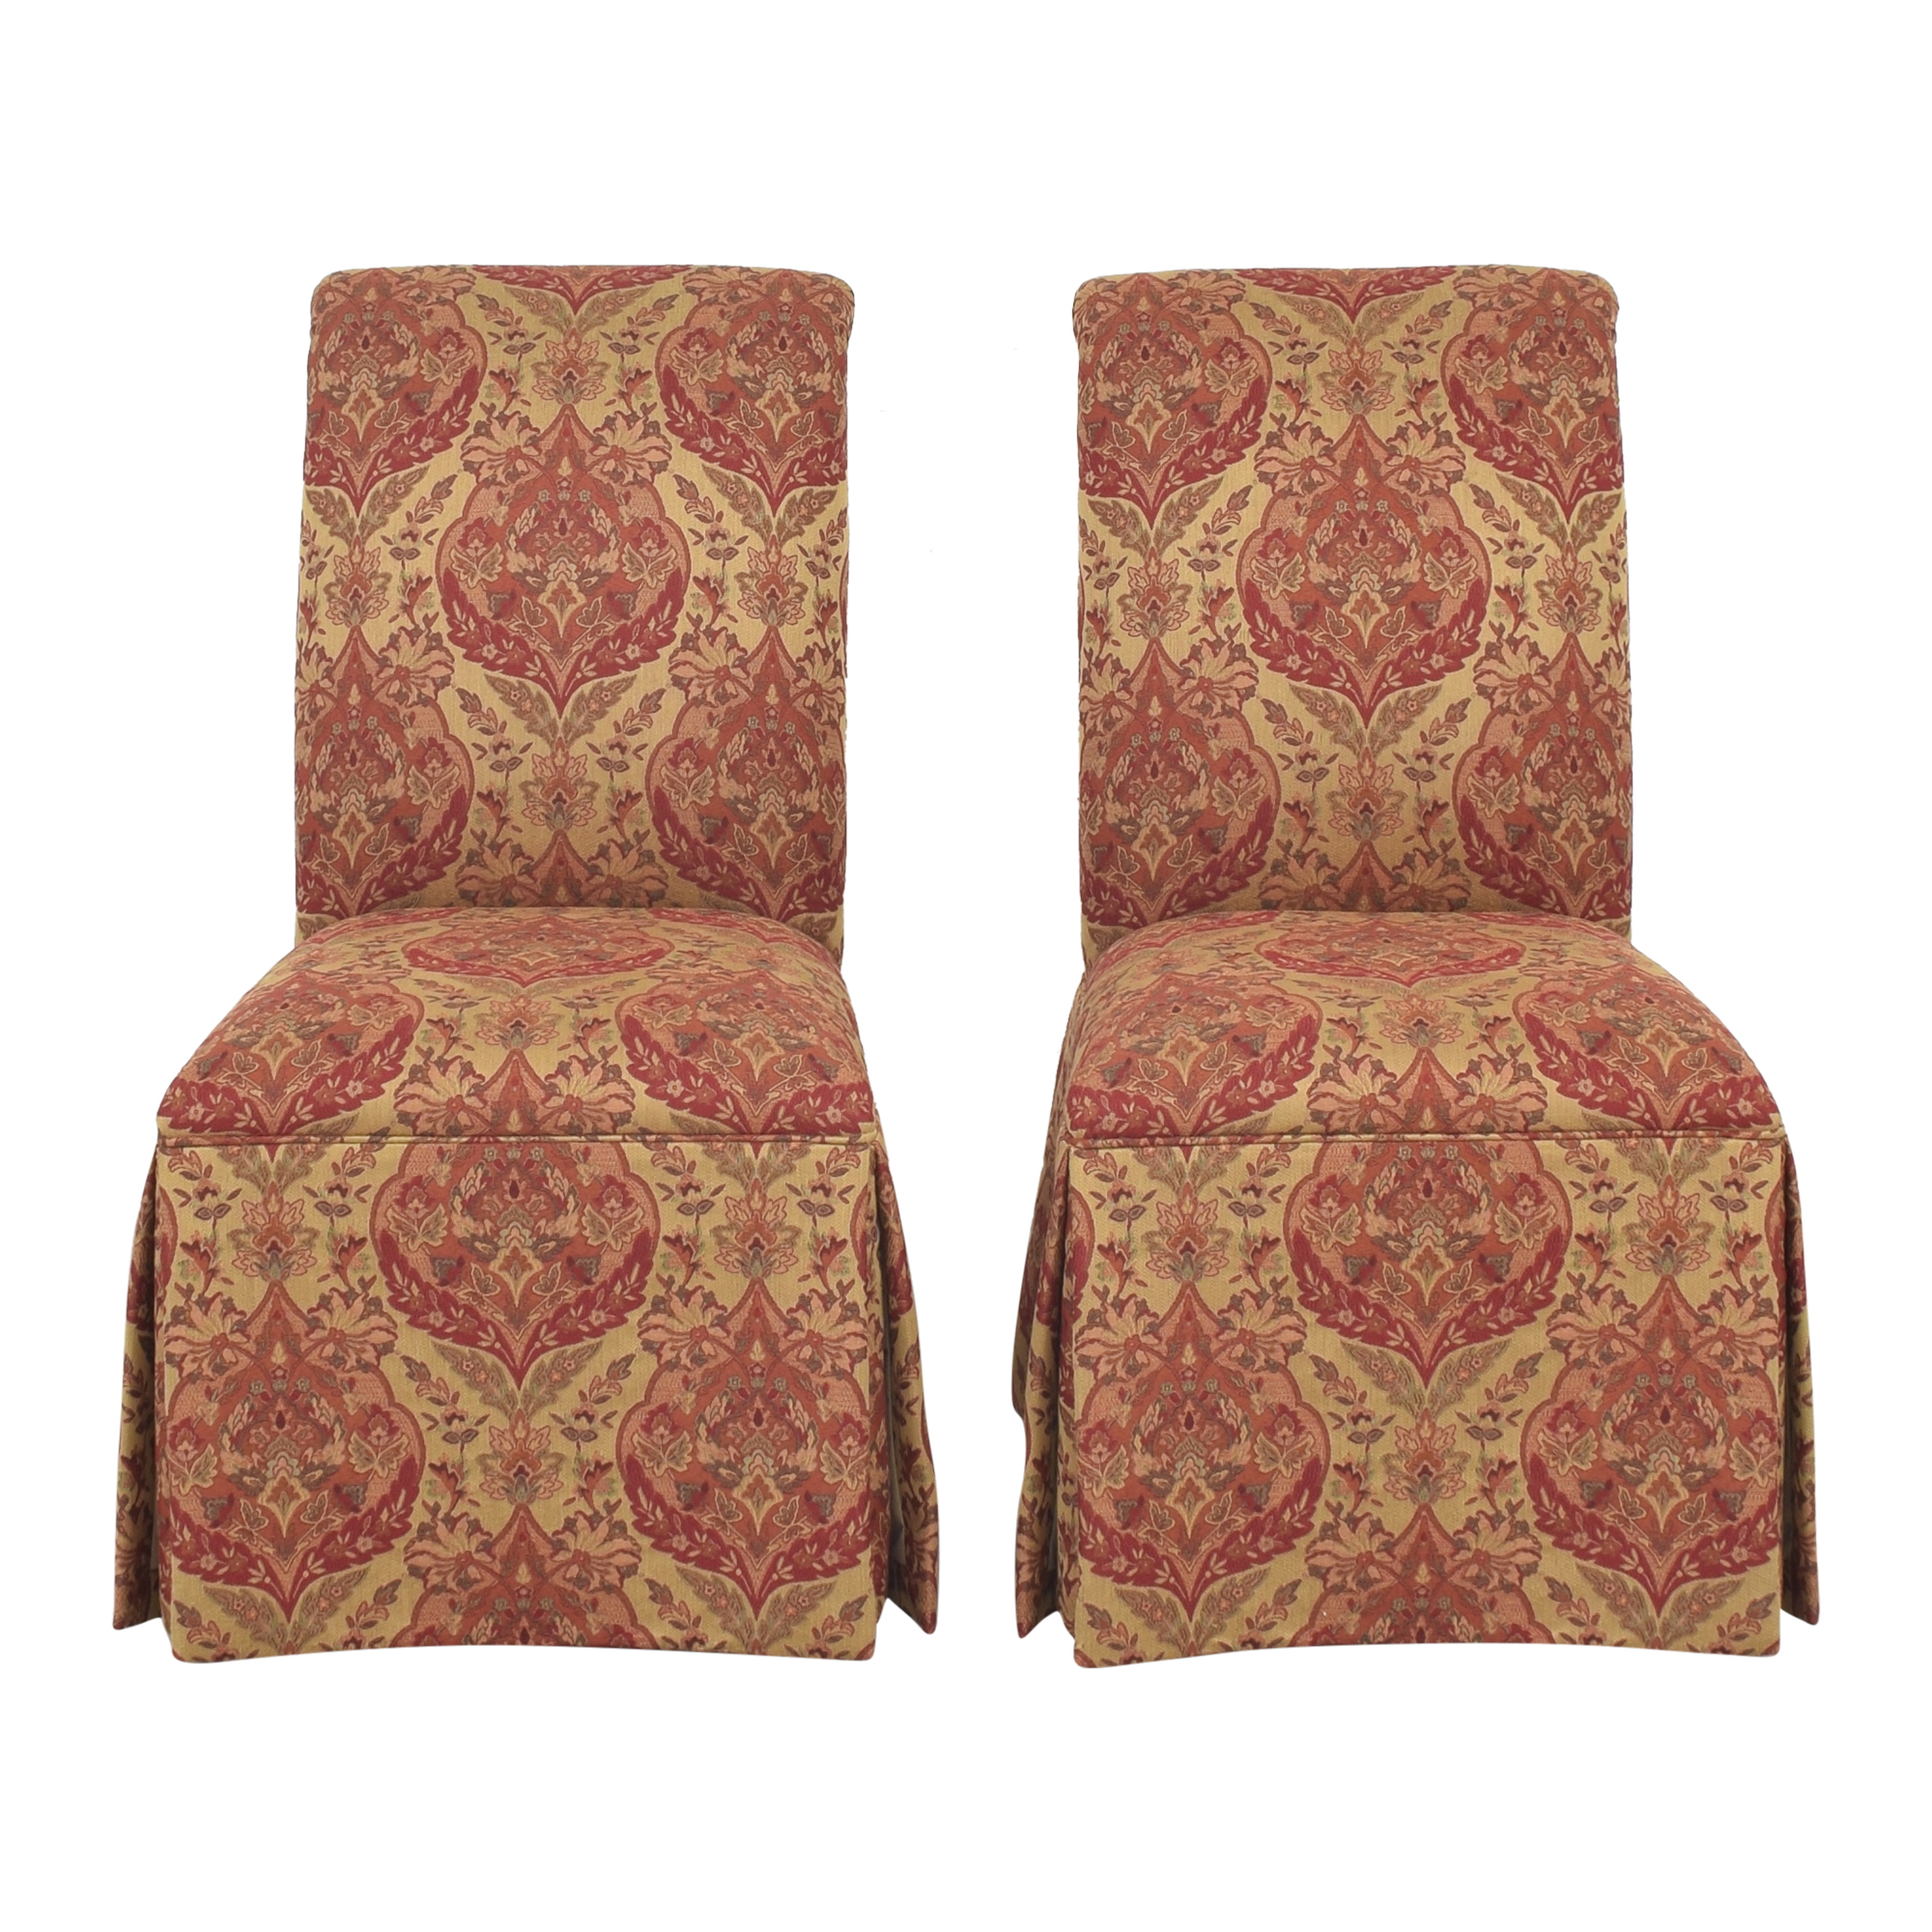 Ethan Allen Ethan Allen Olivia Skirted Side Chairs ma